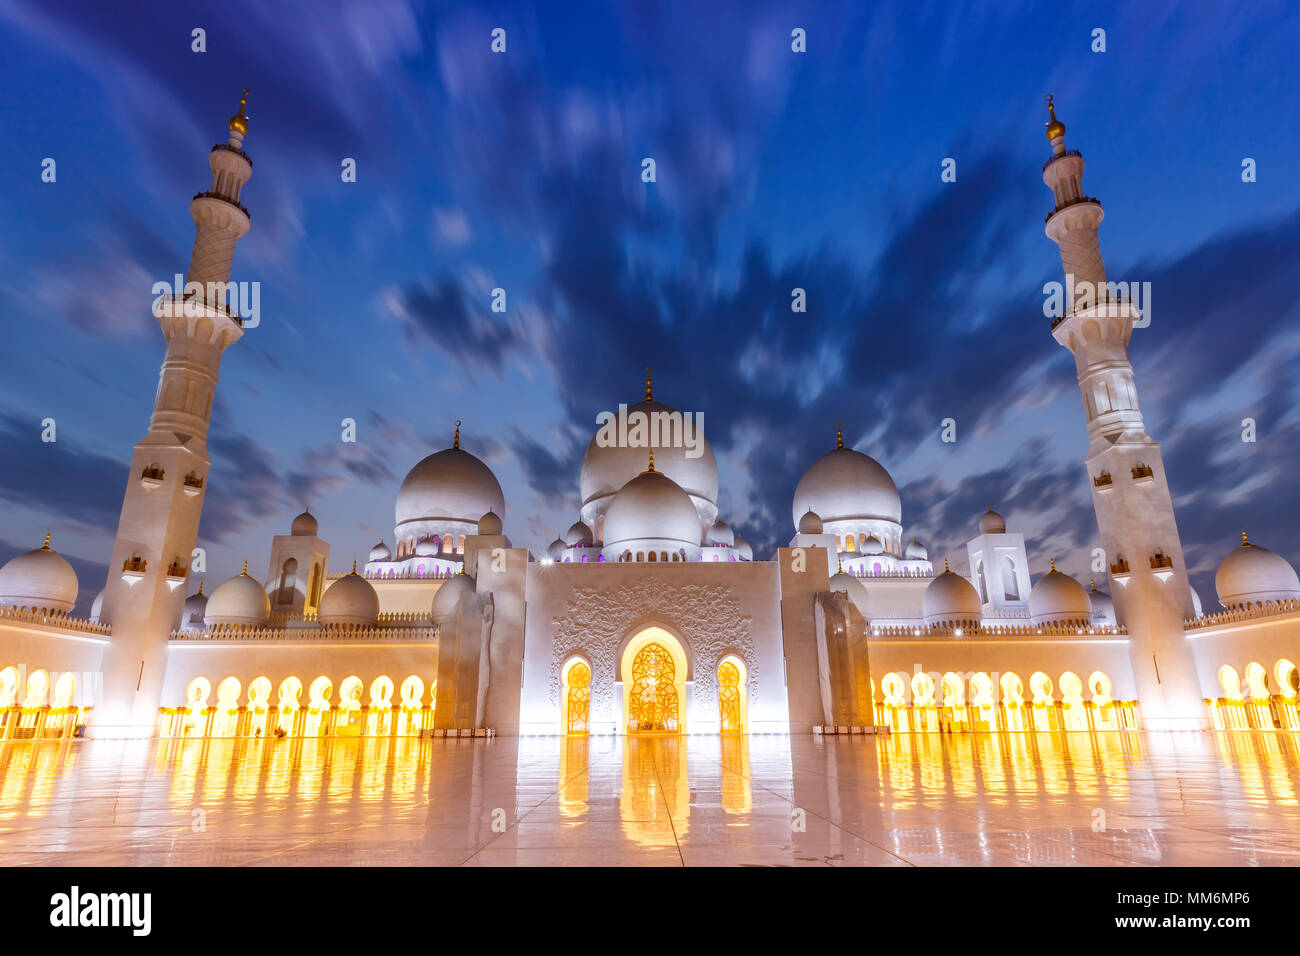 Abu Dhabi la Grande Mosquée Sheikh Zayed twilight minarets Émirats Arabes Unis ÉMIRATS ARABES UNIS Photo Stock